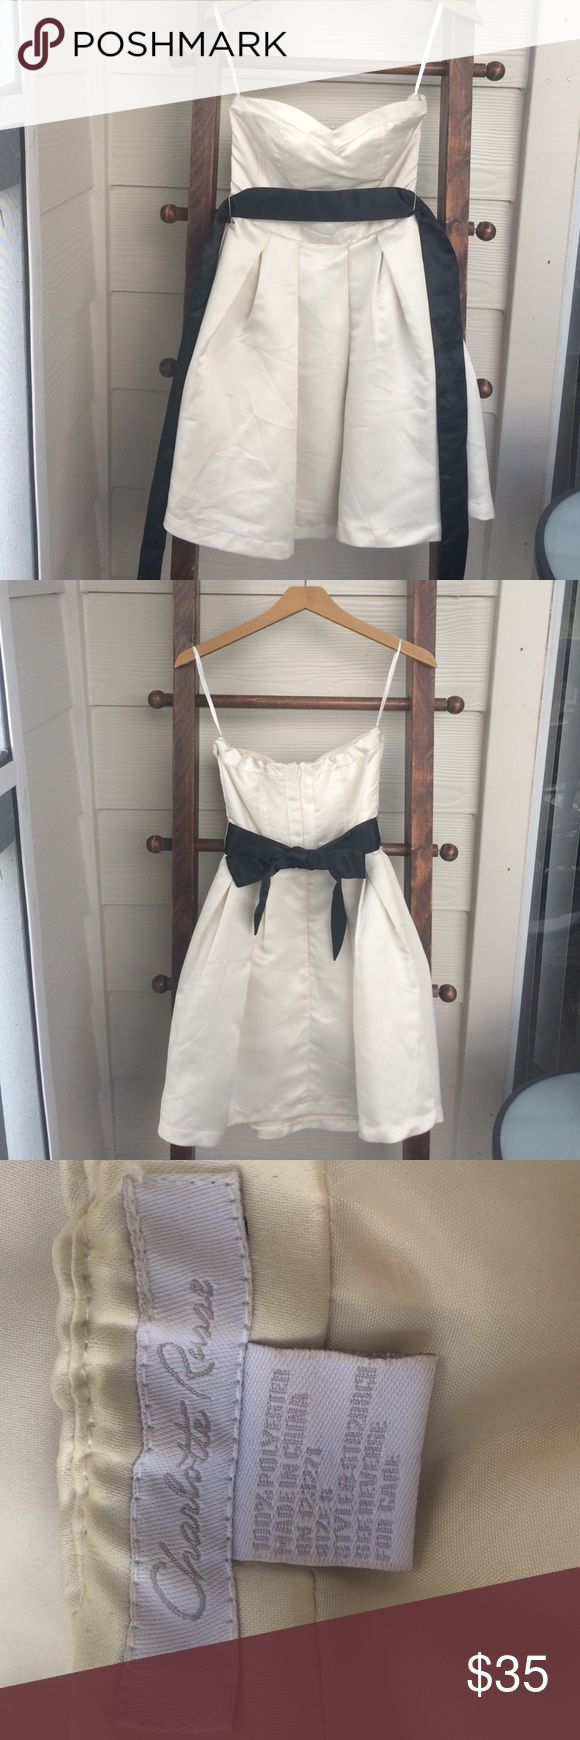 Charlotte Russe Cream Formal Dress Charlotte Russe Small Cream Formal Dress with Black Sash. Great for Prom, Formal, or a Party! Charlotte Russe Dresses Strapless